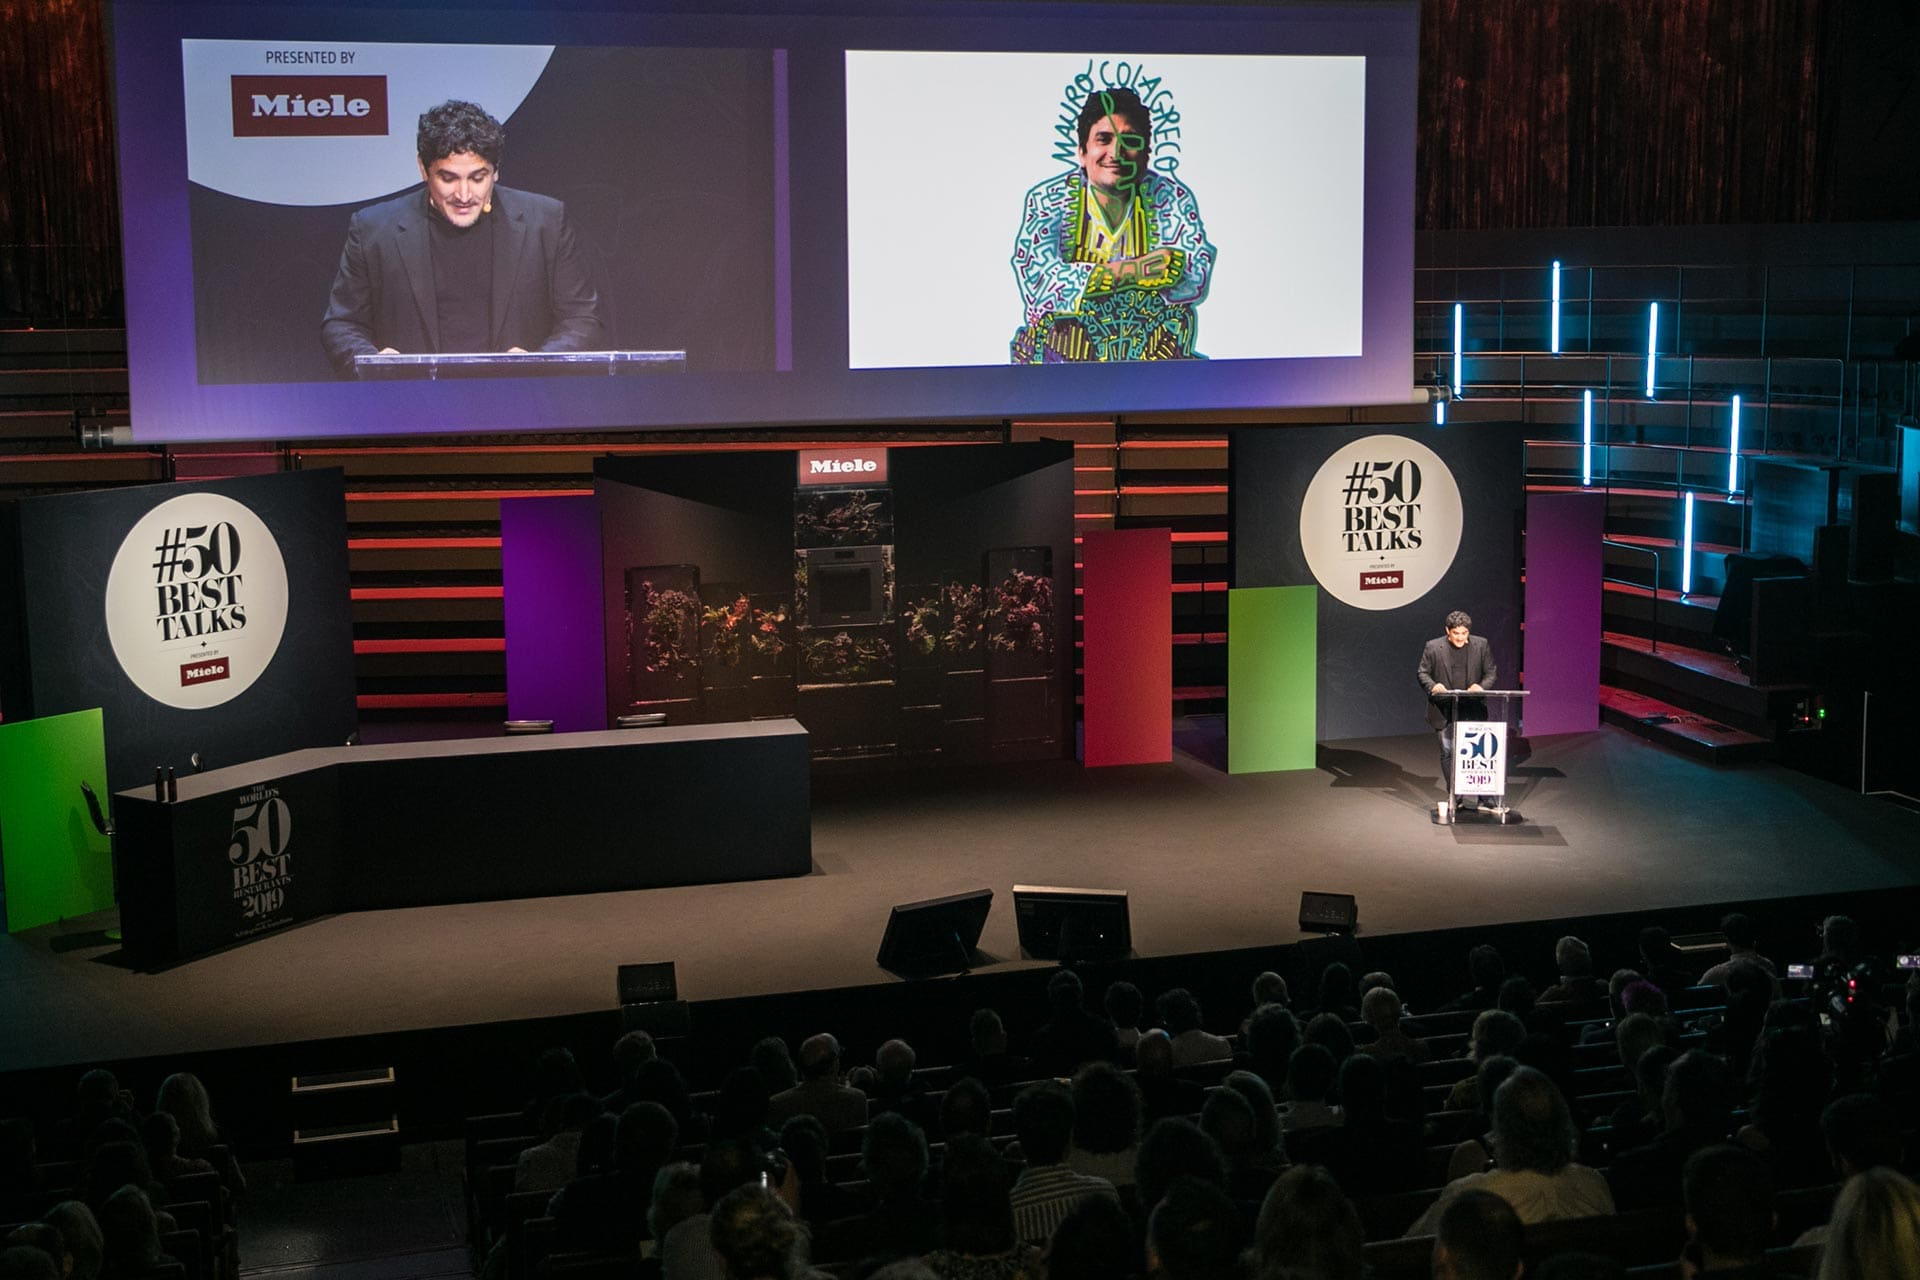 #50 Best talks Paris